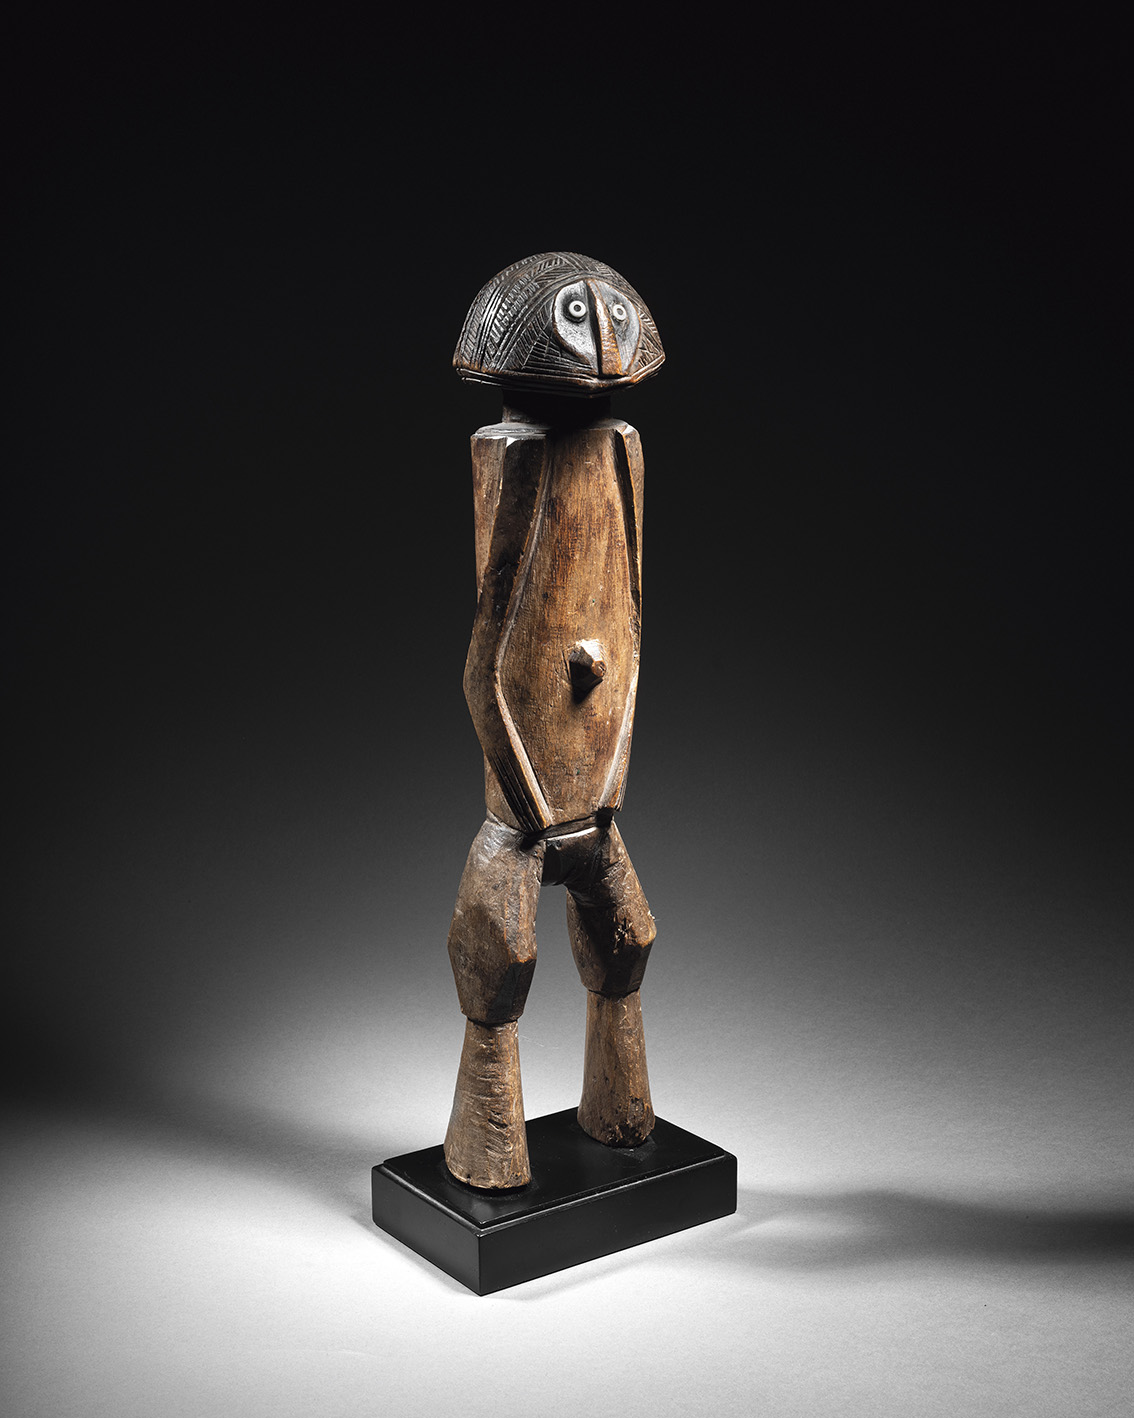 Central African Republic, Mobaye region, Banda statuette, wood with a worn dark brown patina, h. 40 cm (i.e. 15.75 in).Result: €135,400